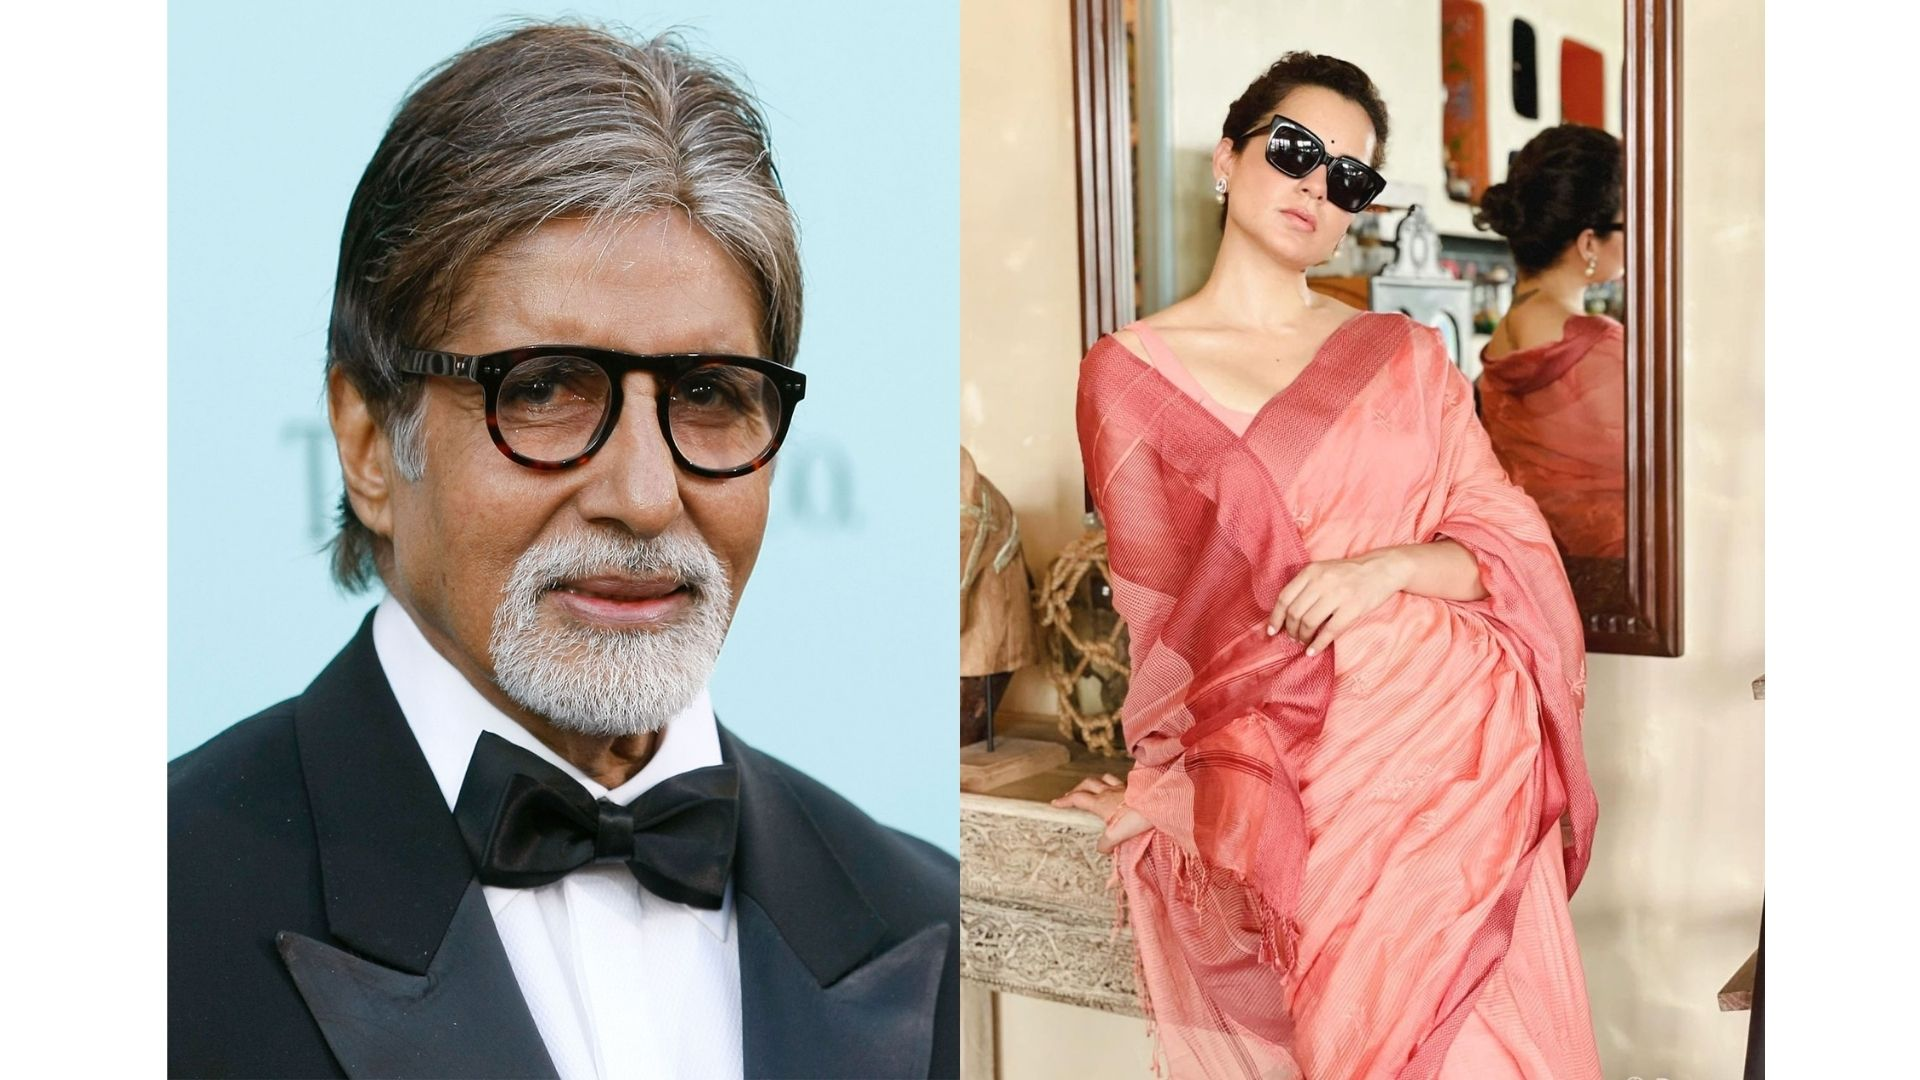 From Amitabh Bachchan To Kangana Ranaut, 4 Actors Who Played The Perfect Politician